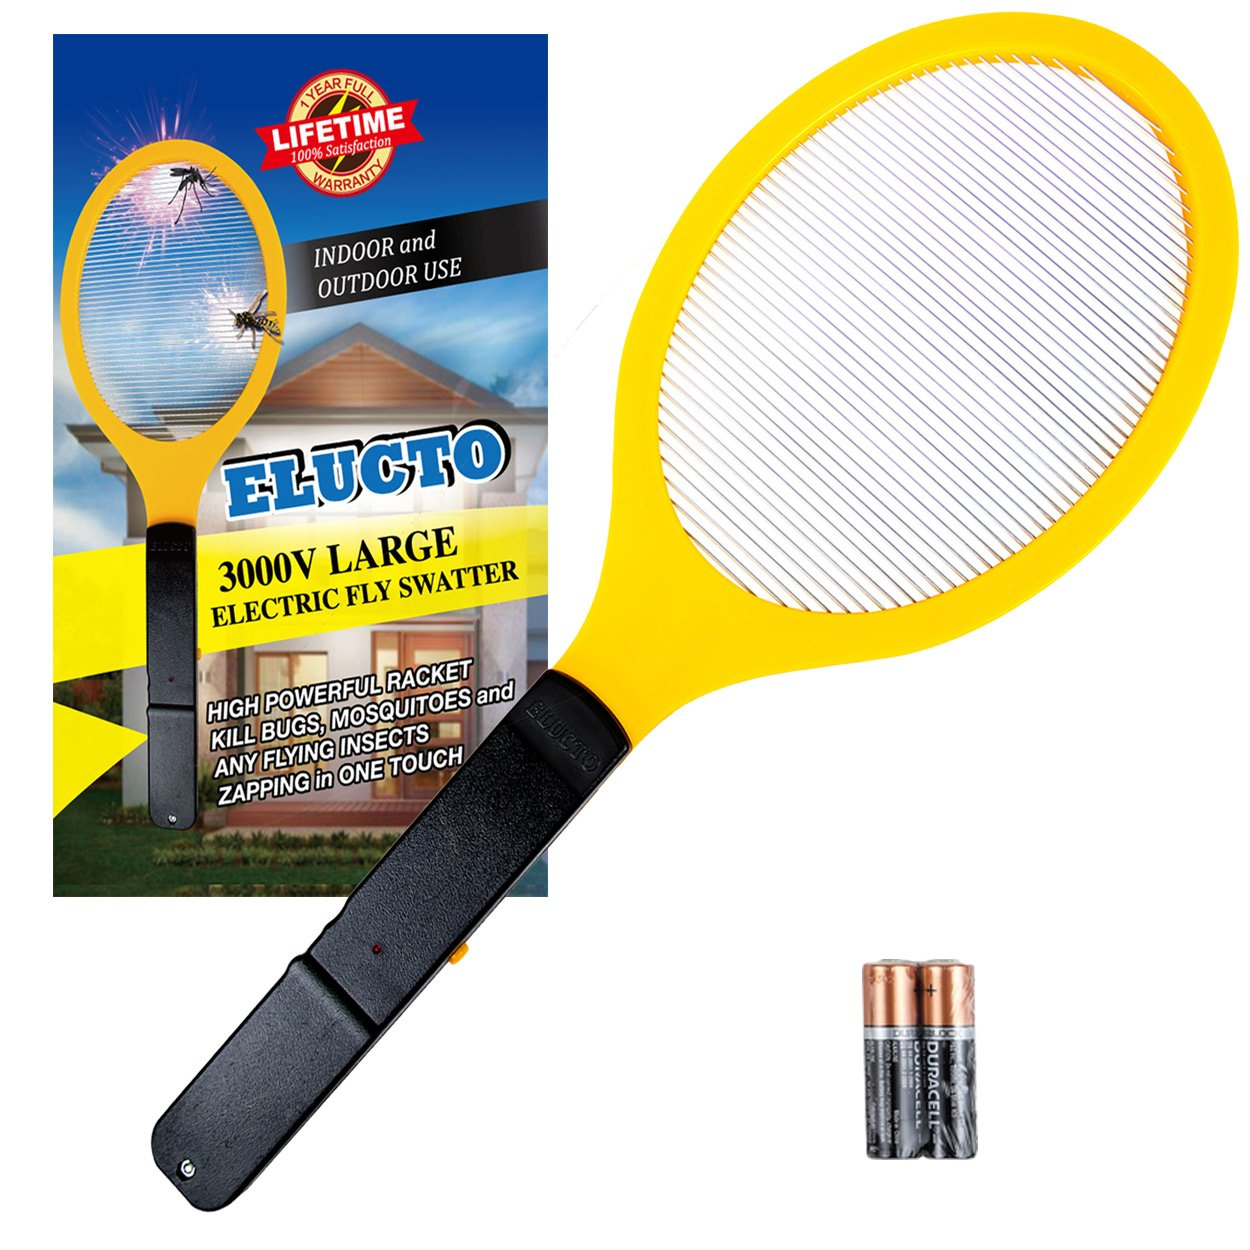 Elucto Large Electric Bug Zapper Fly Swatter Zap Mosquito Best for Indoor and Outdoor Pest Control (2 DURACELL AA Batteries Included)